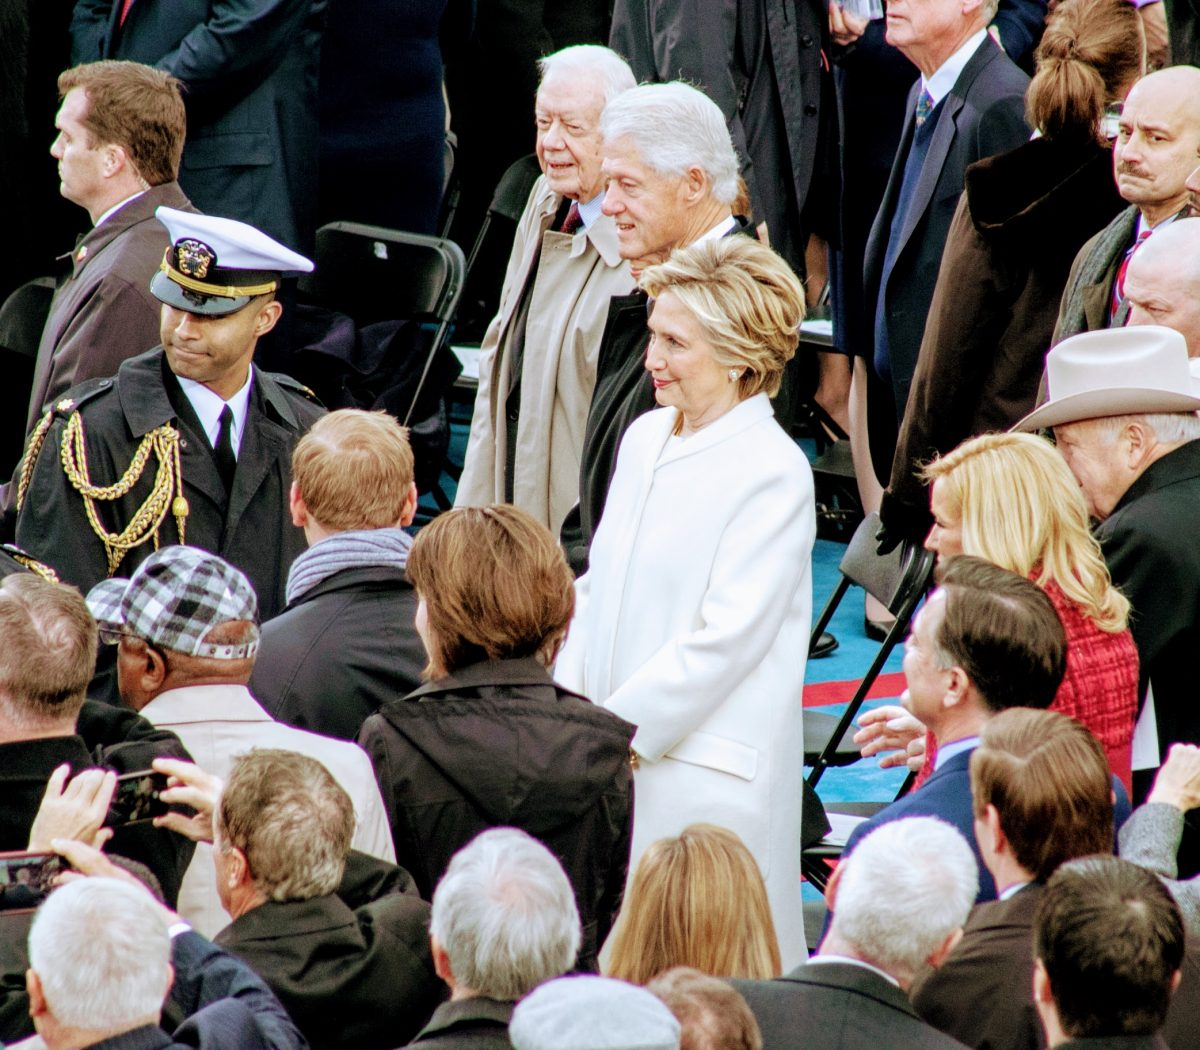 42nd President of the United States Bill Clinton and his wife Hillary arrive at the Inauguration of the 45th President. /Photo by Roy Lewis